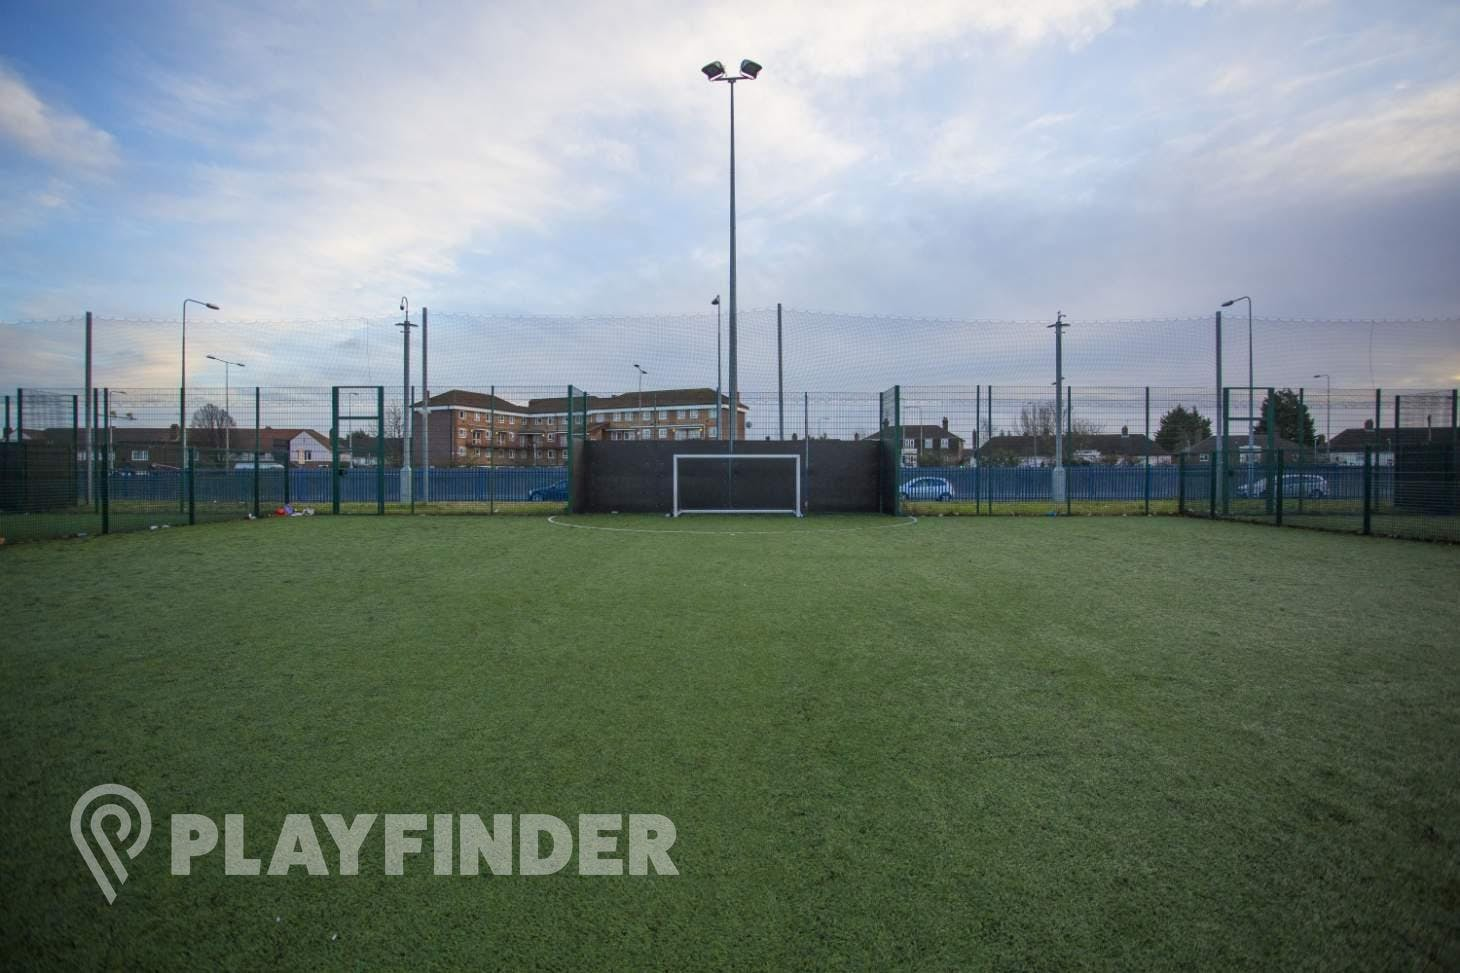 Newham Leisure Centre 7 a side | 3G Astroturf football pitch